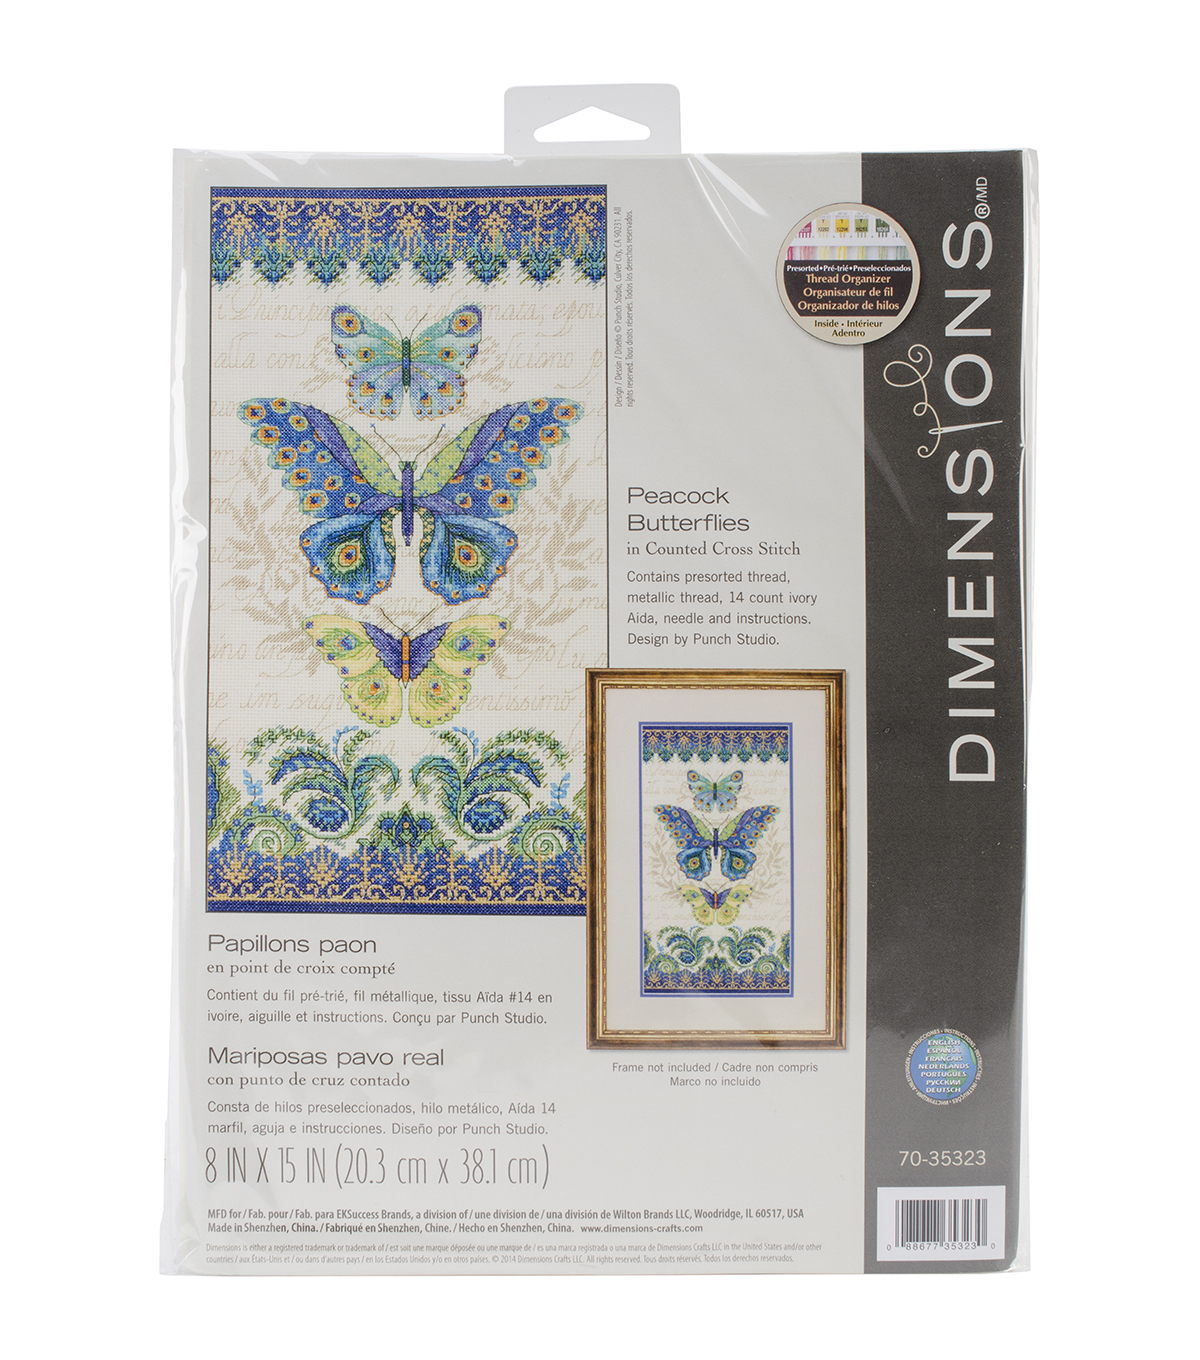 Dimensions Peacock Butterflies Counted Cross Stitch Kit